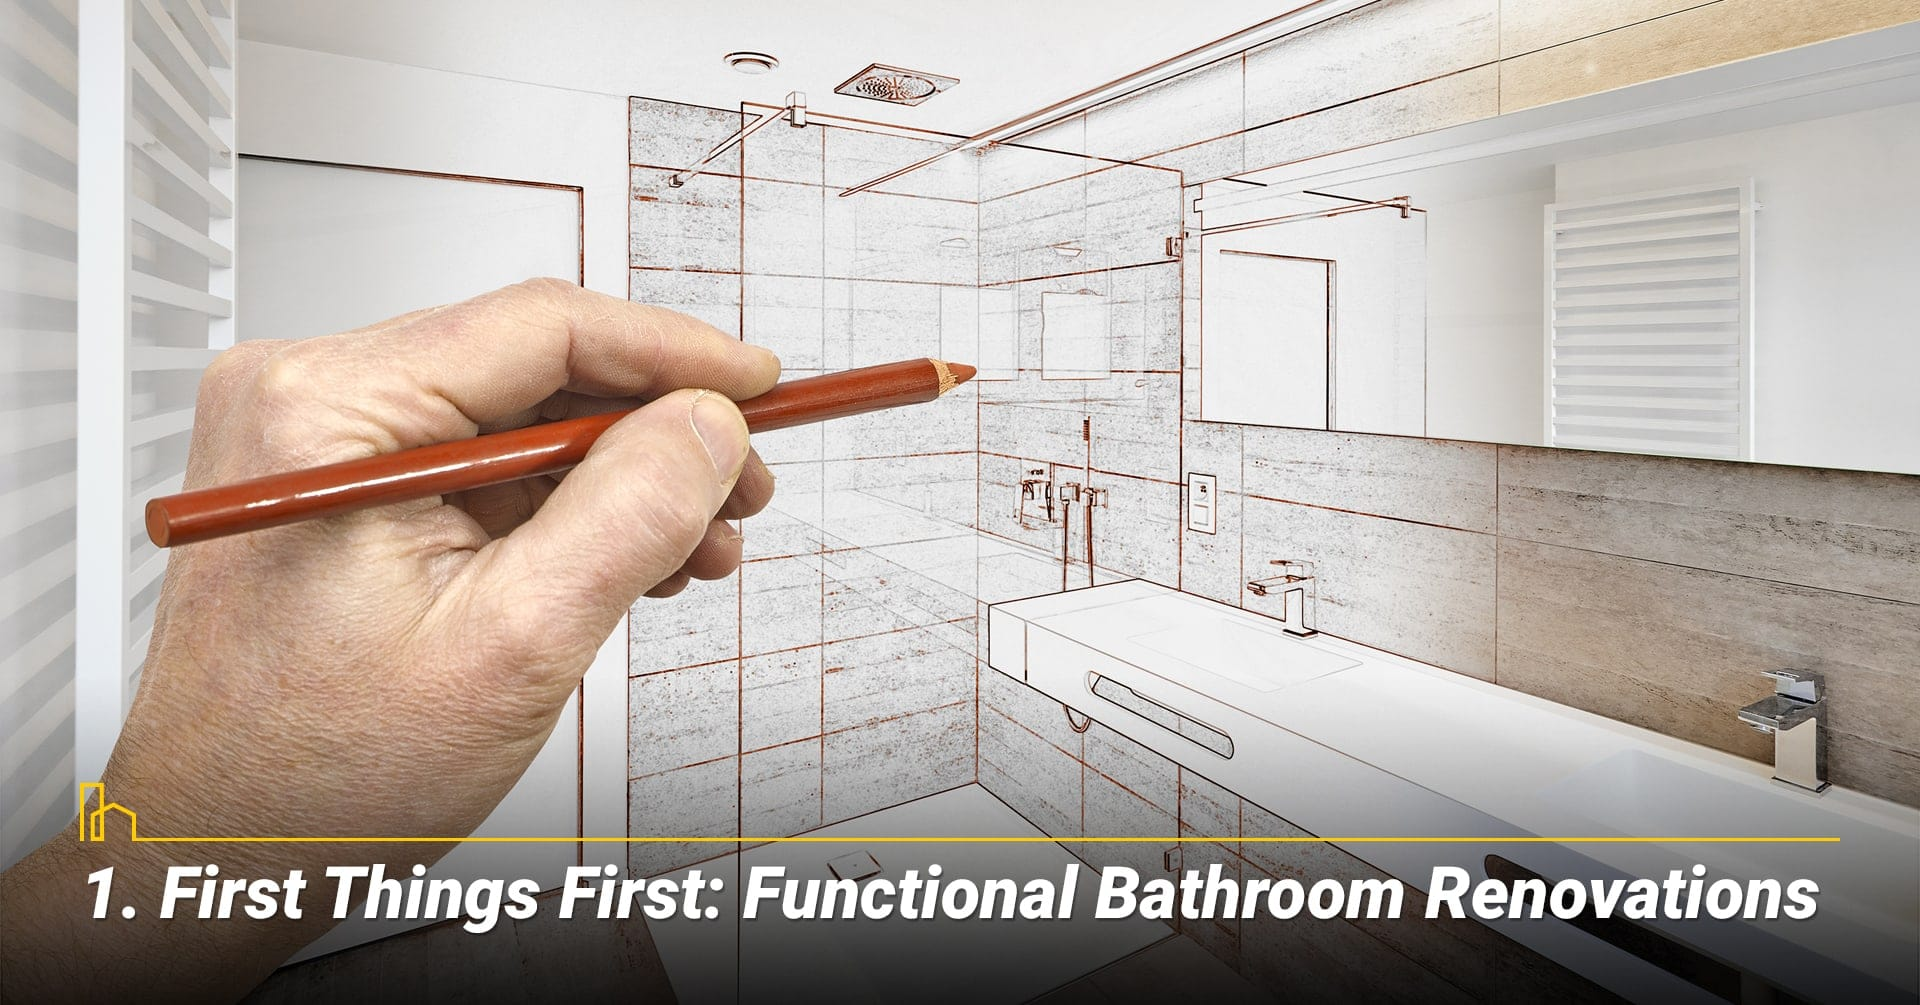 First Things First: Functional Bathroom Renovations, upgrade your bathroom